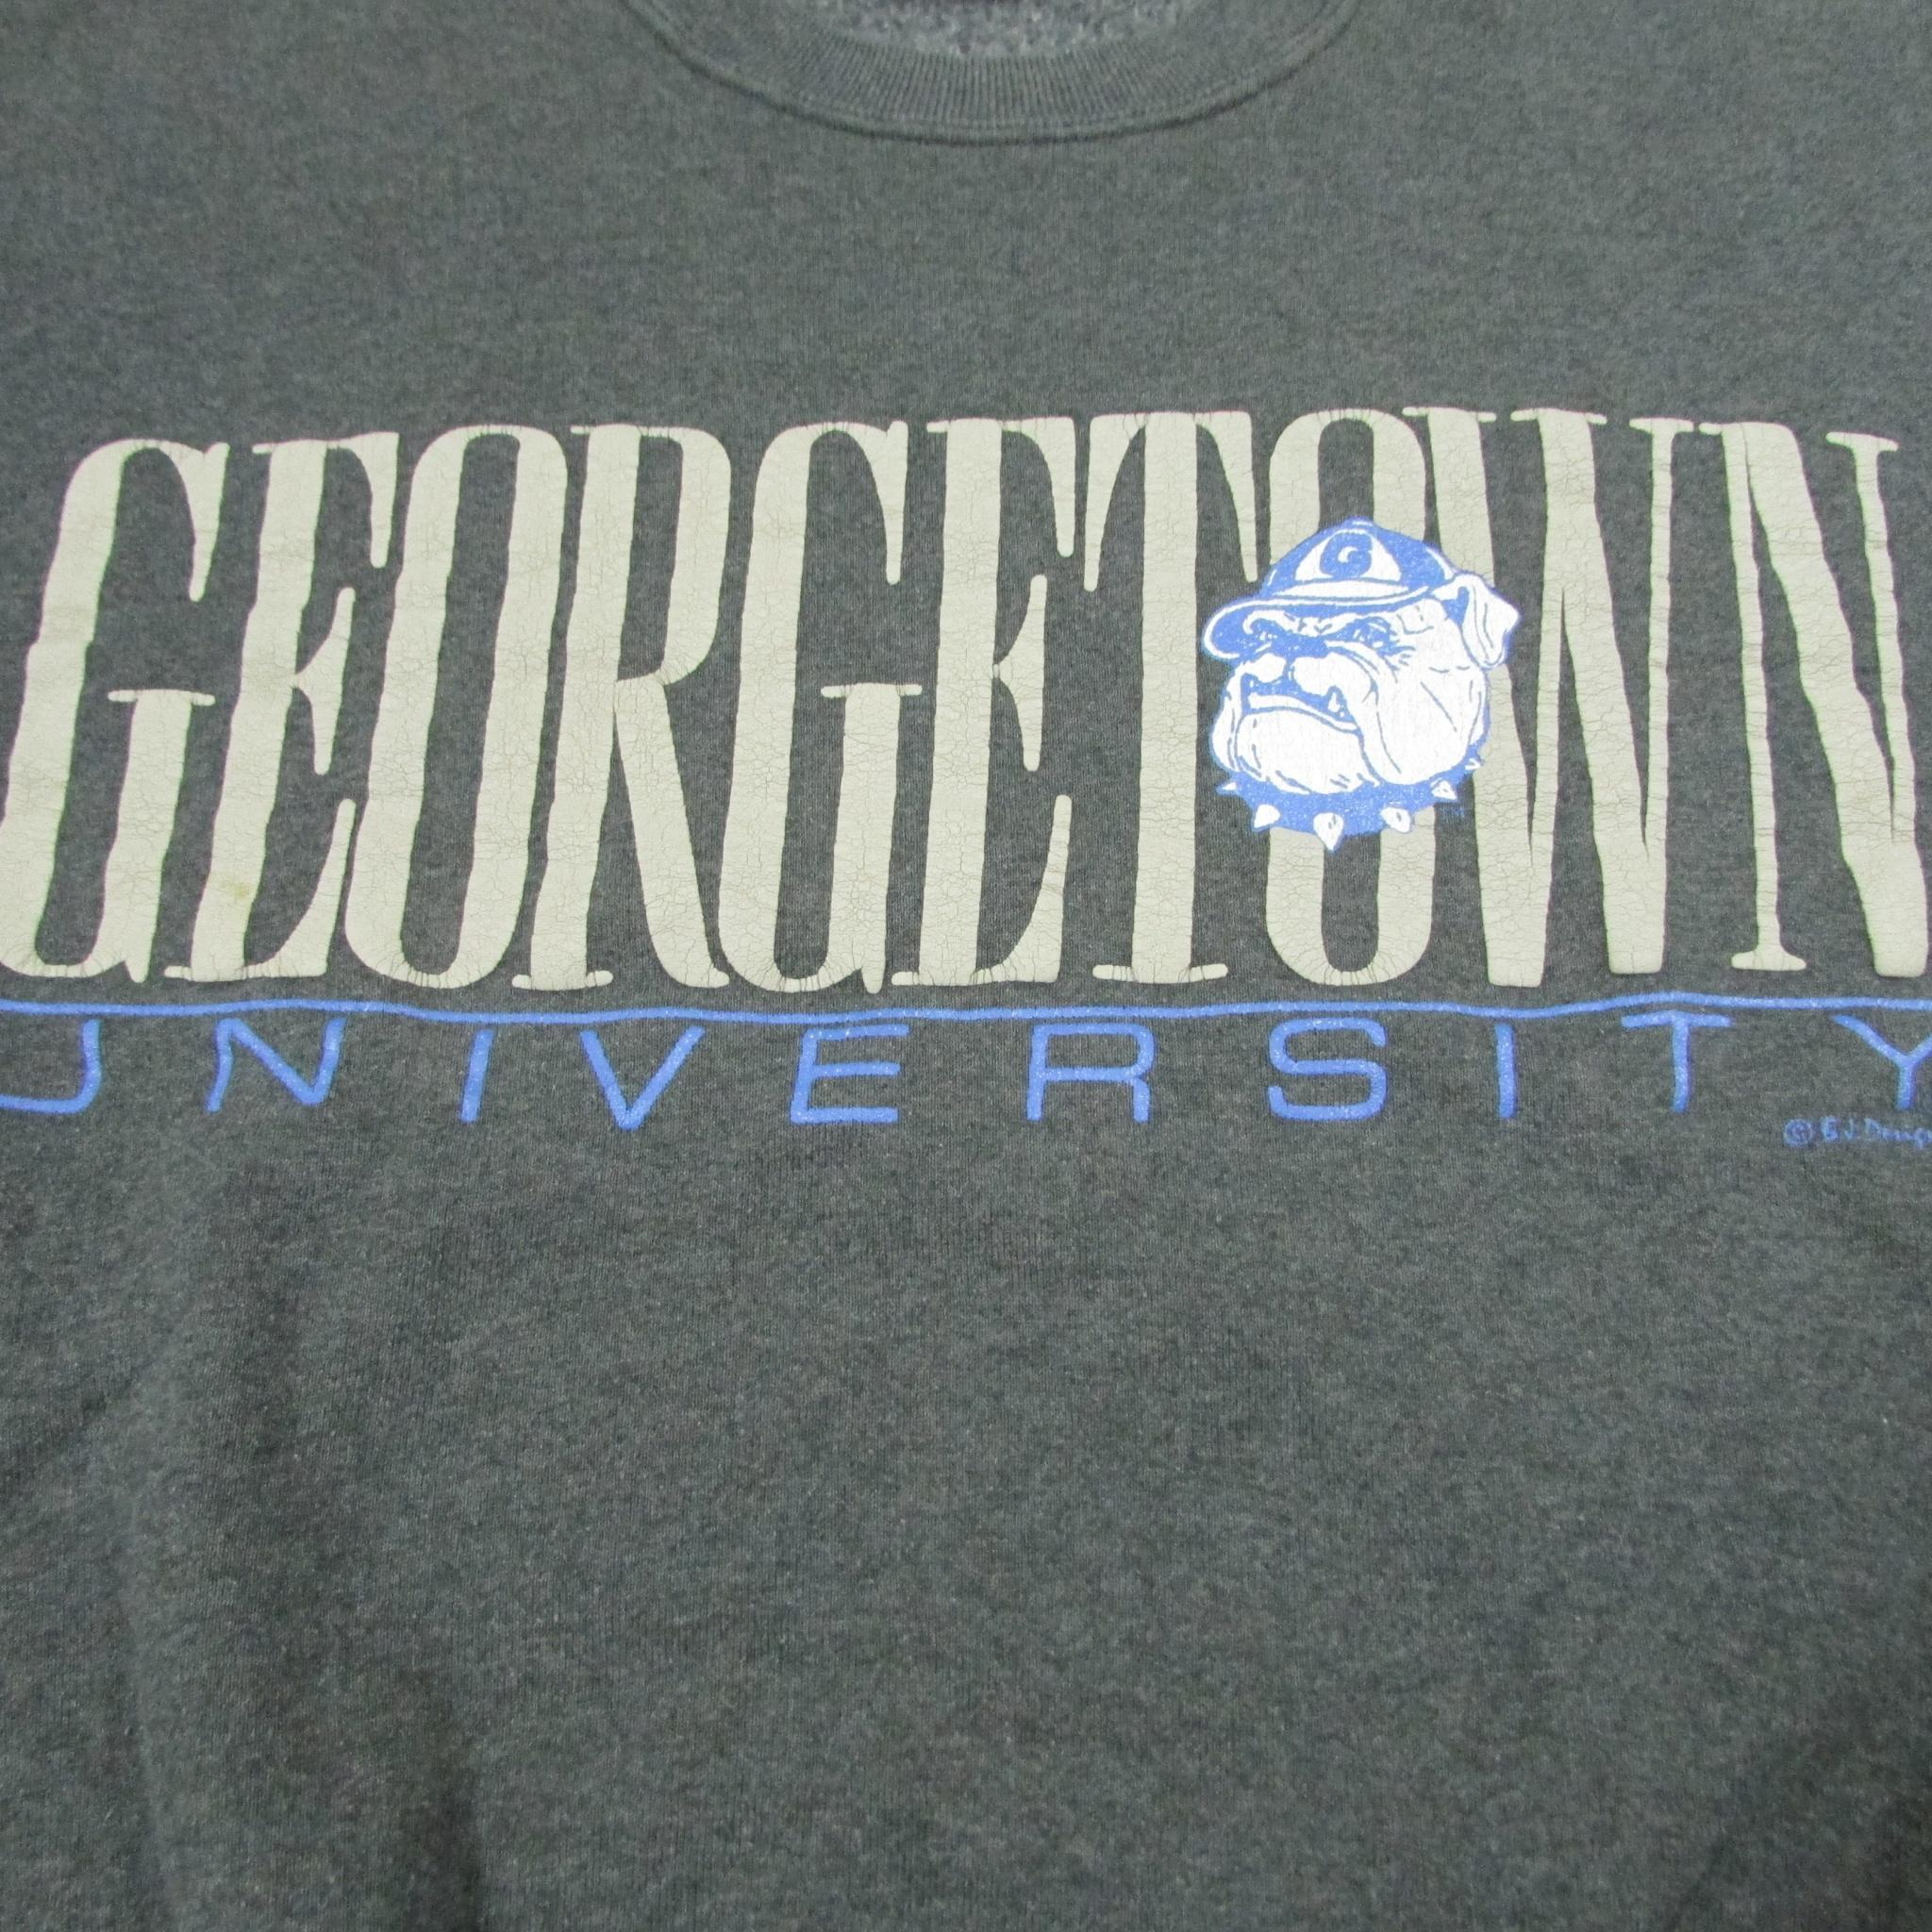 Georgetown University Hoyas Vintage College Sweater Sz L